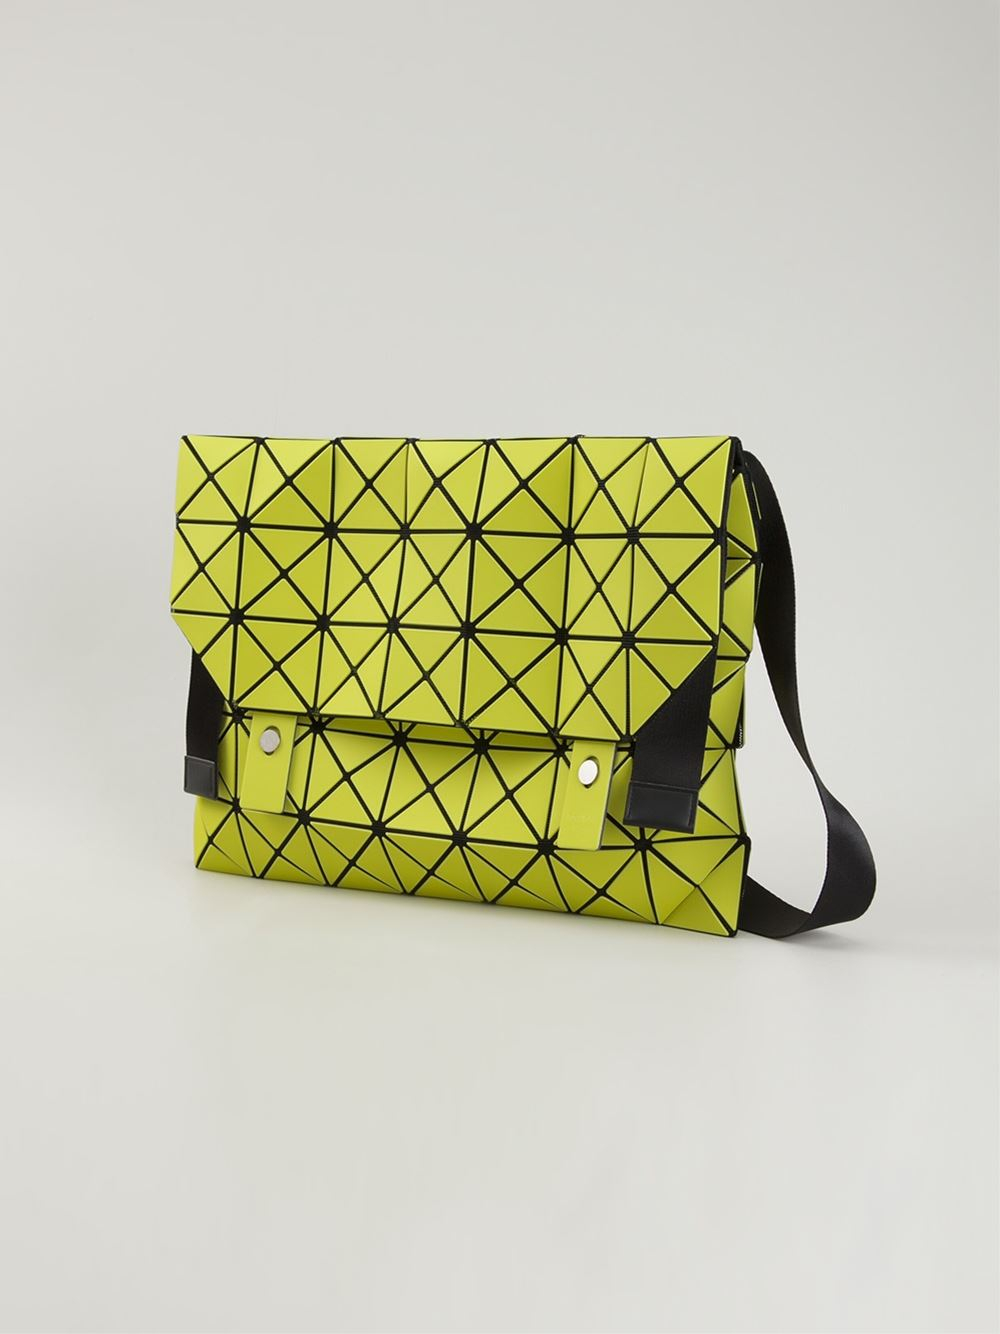 3445395ad42 Previously sold at Farfetch · Womens Bao Bao Issey Miyake Prism hot sale  online ...